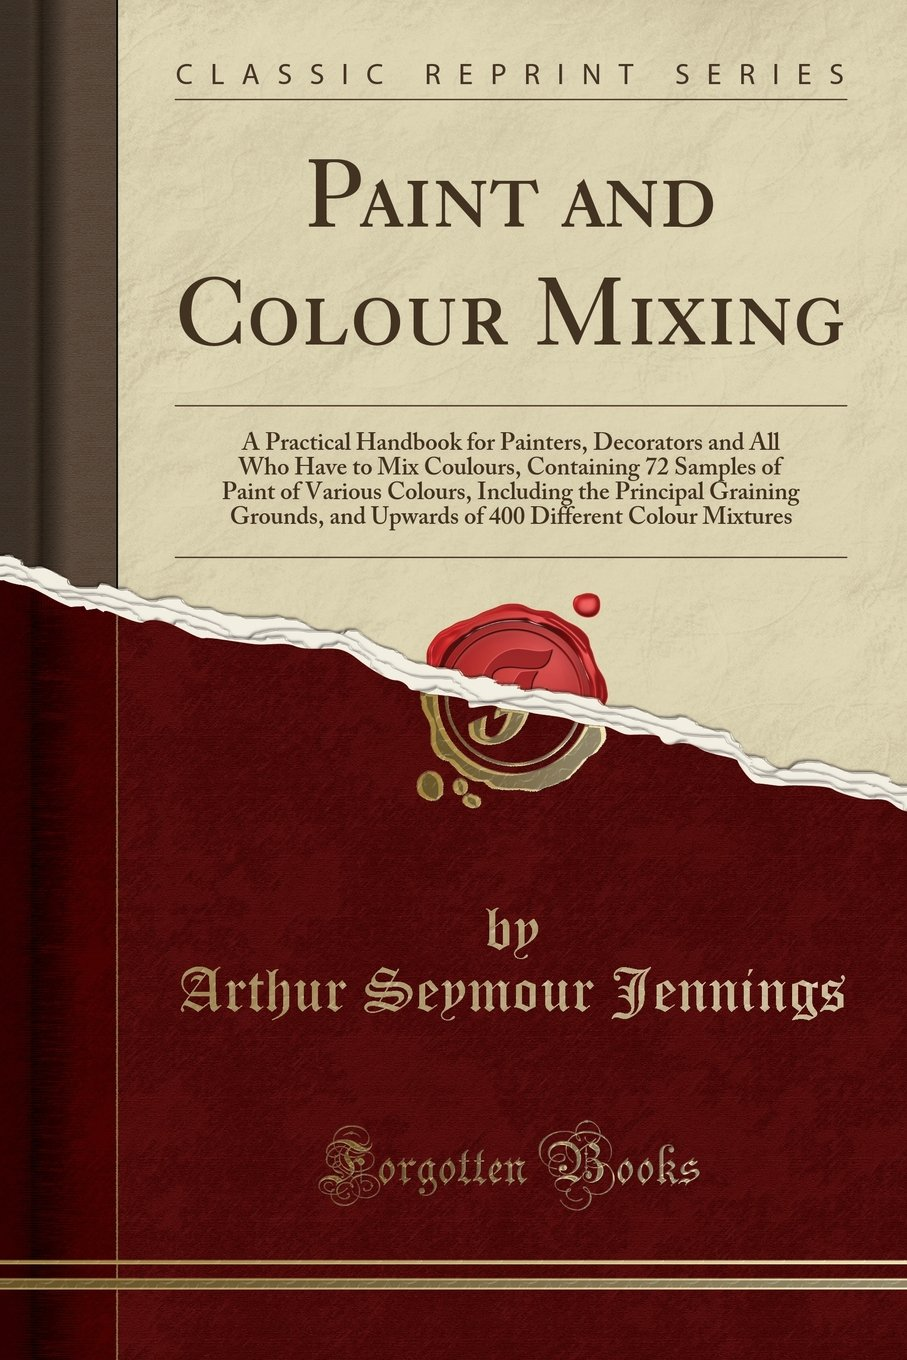 Paint and Colour Mixing: A Practical Handbook for Painters, Decorators and All Who Have to Mix Coulours, Containing 72 Samples of Paint of Various ... and Upwards of 400 Different Colour Mixtures pdf